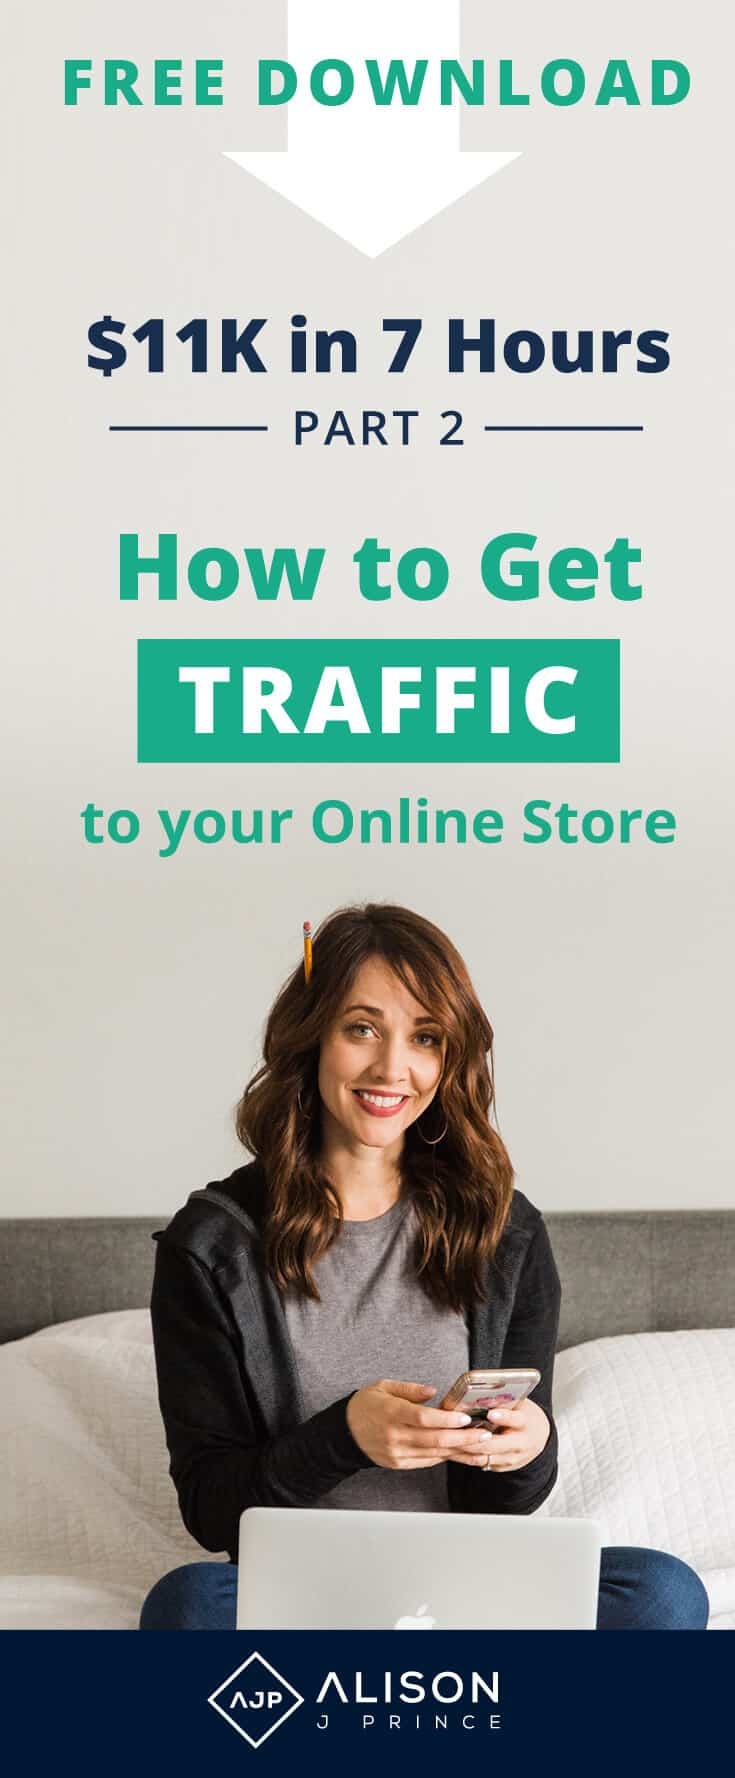 online traffic, online business, online store, selling products online